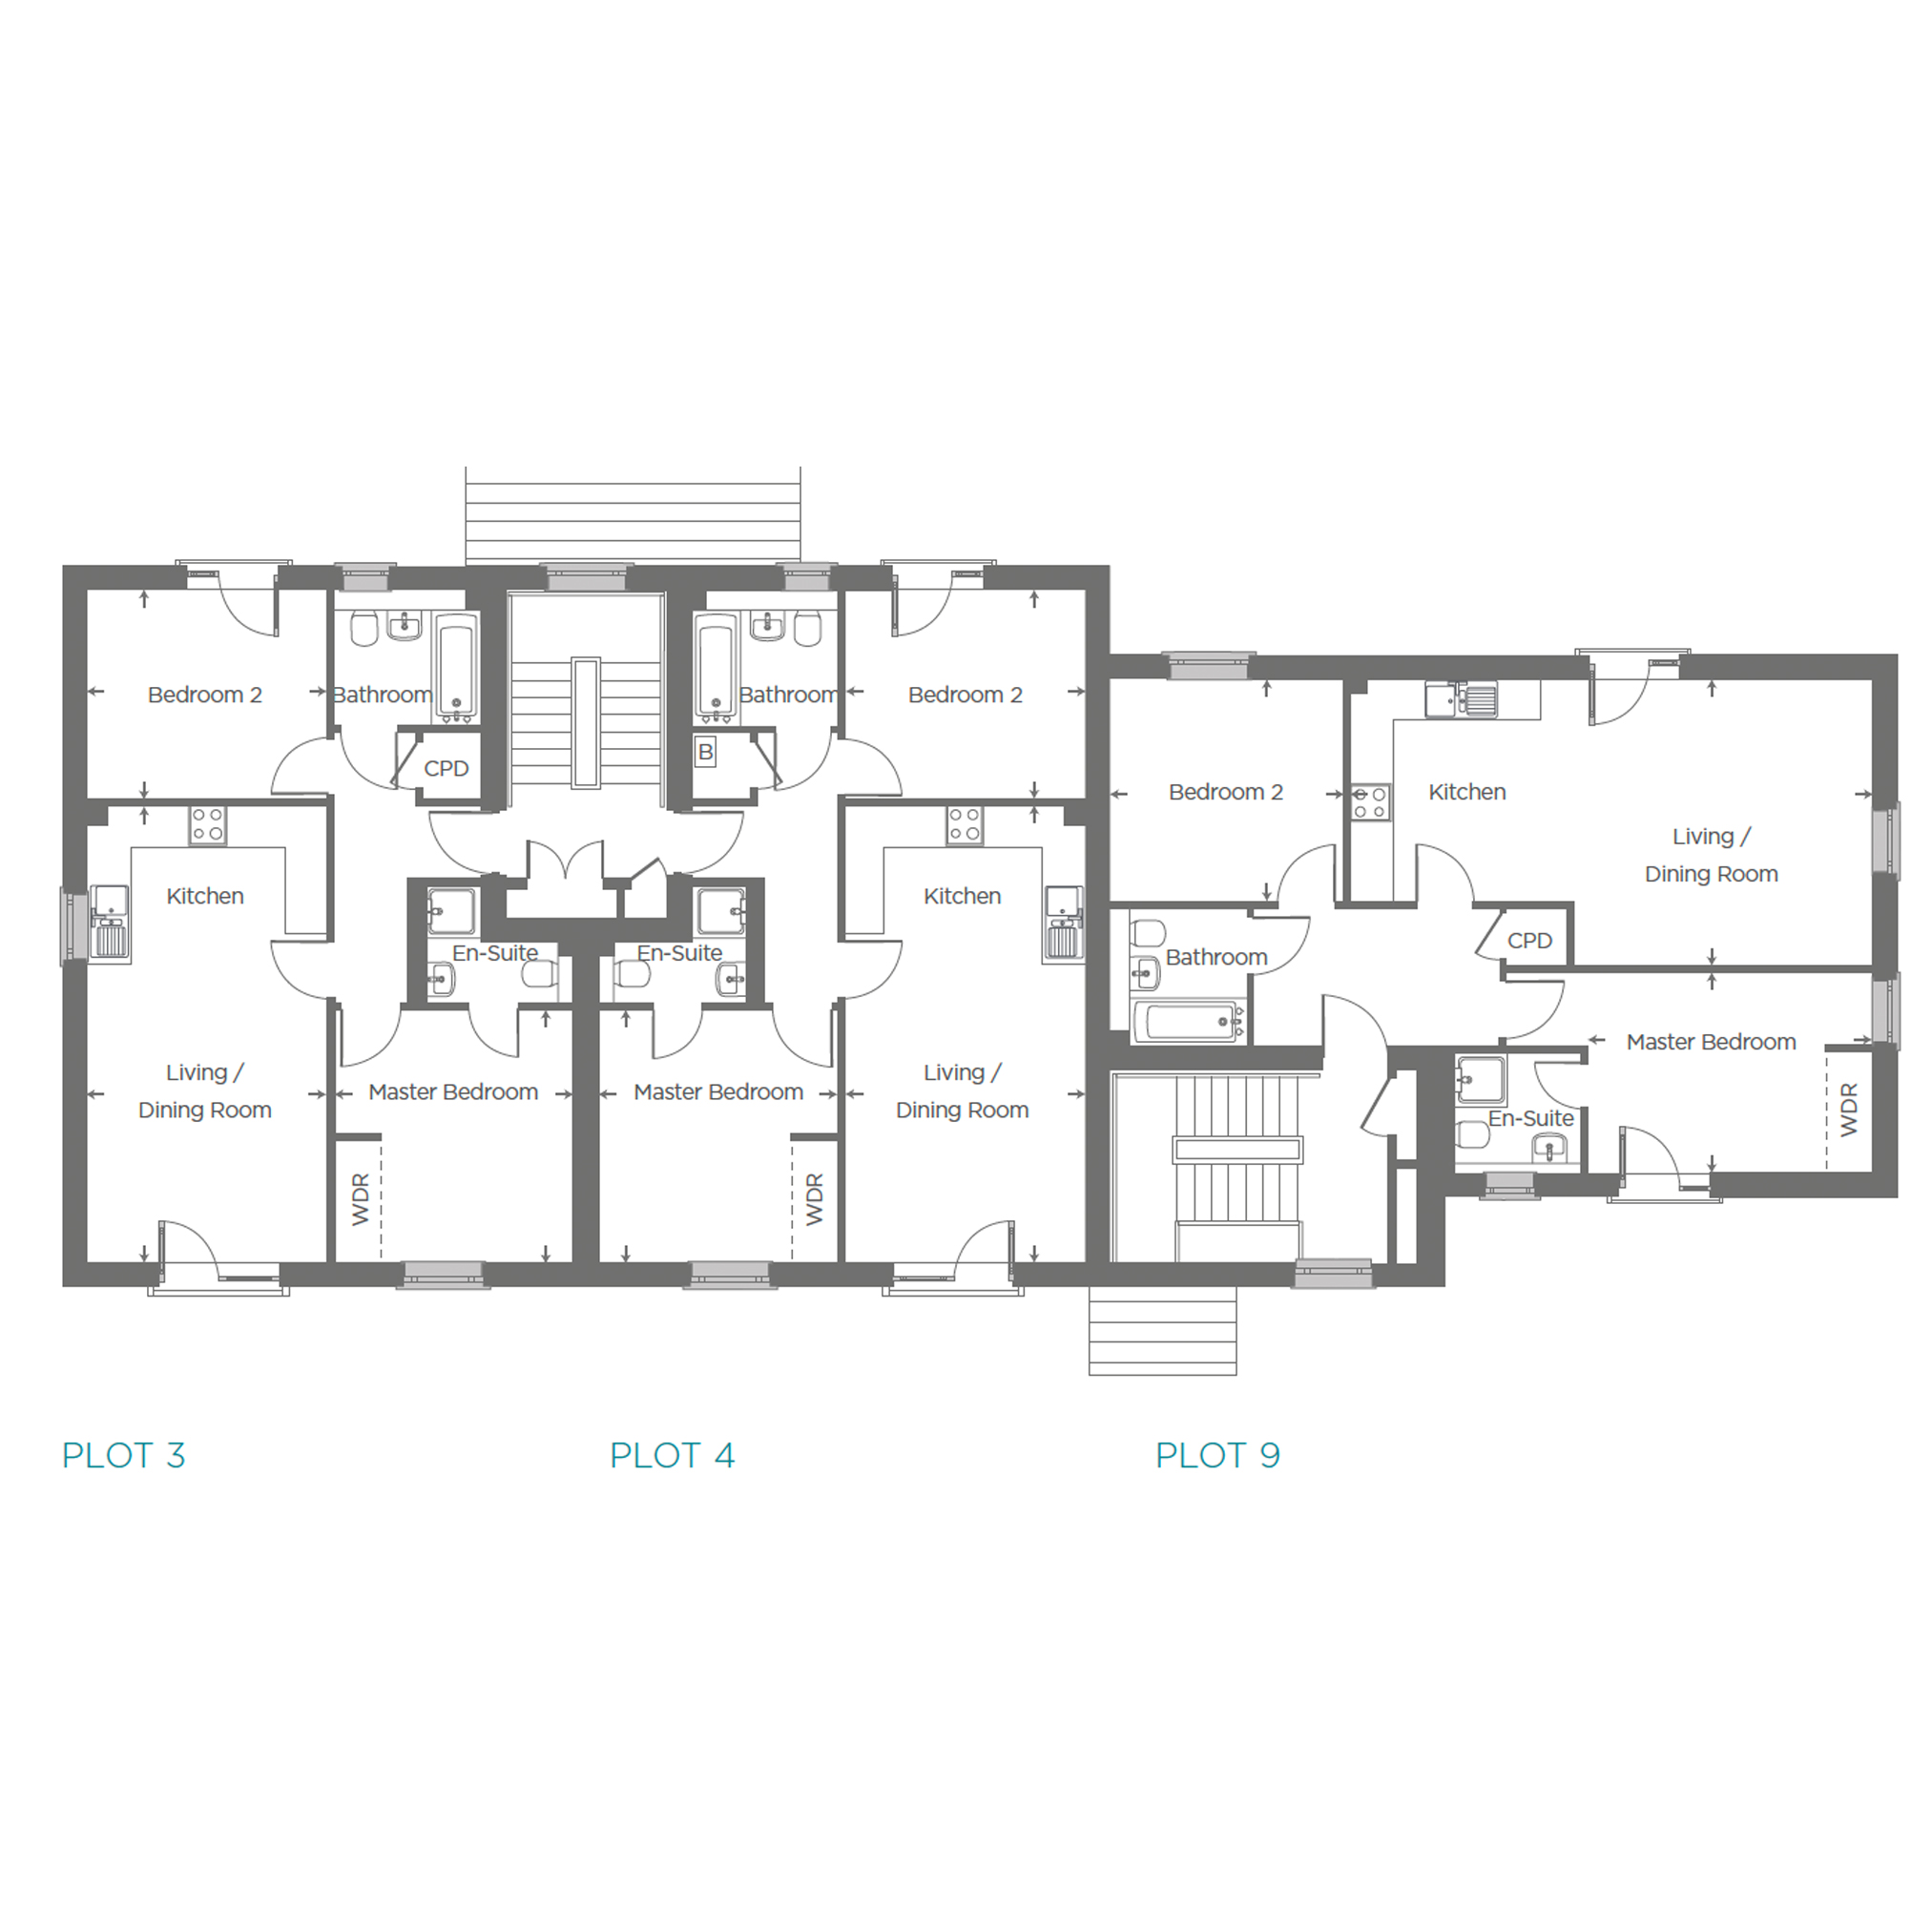 Plot 3 Floor plan